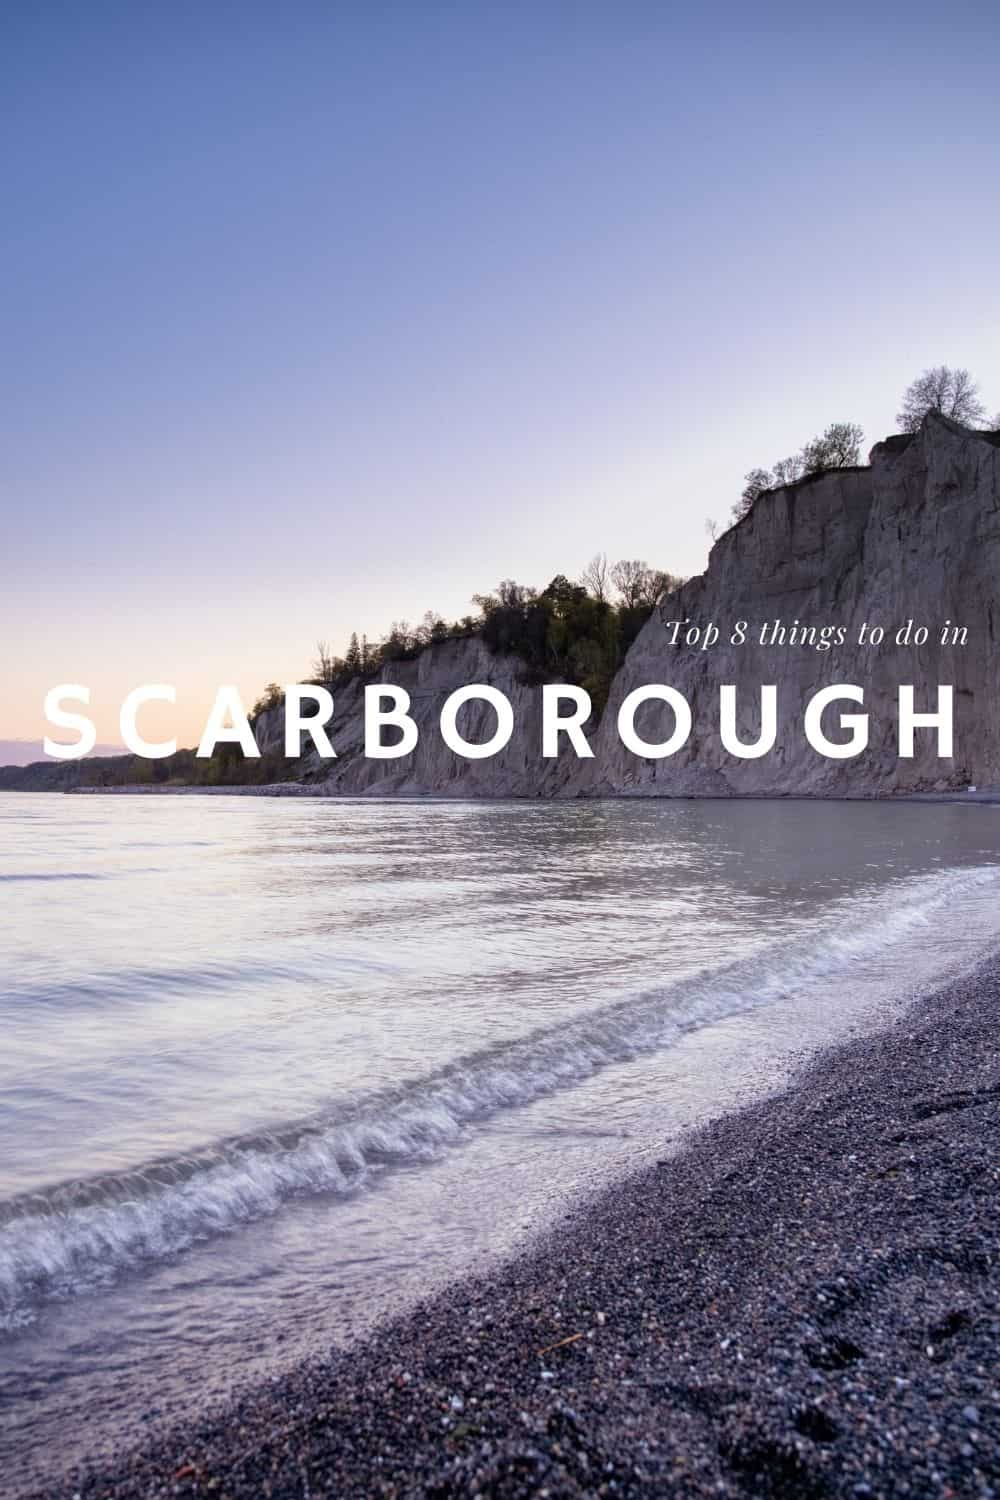 Top 8 Things To Do in Scarborough, Ontario